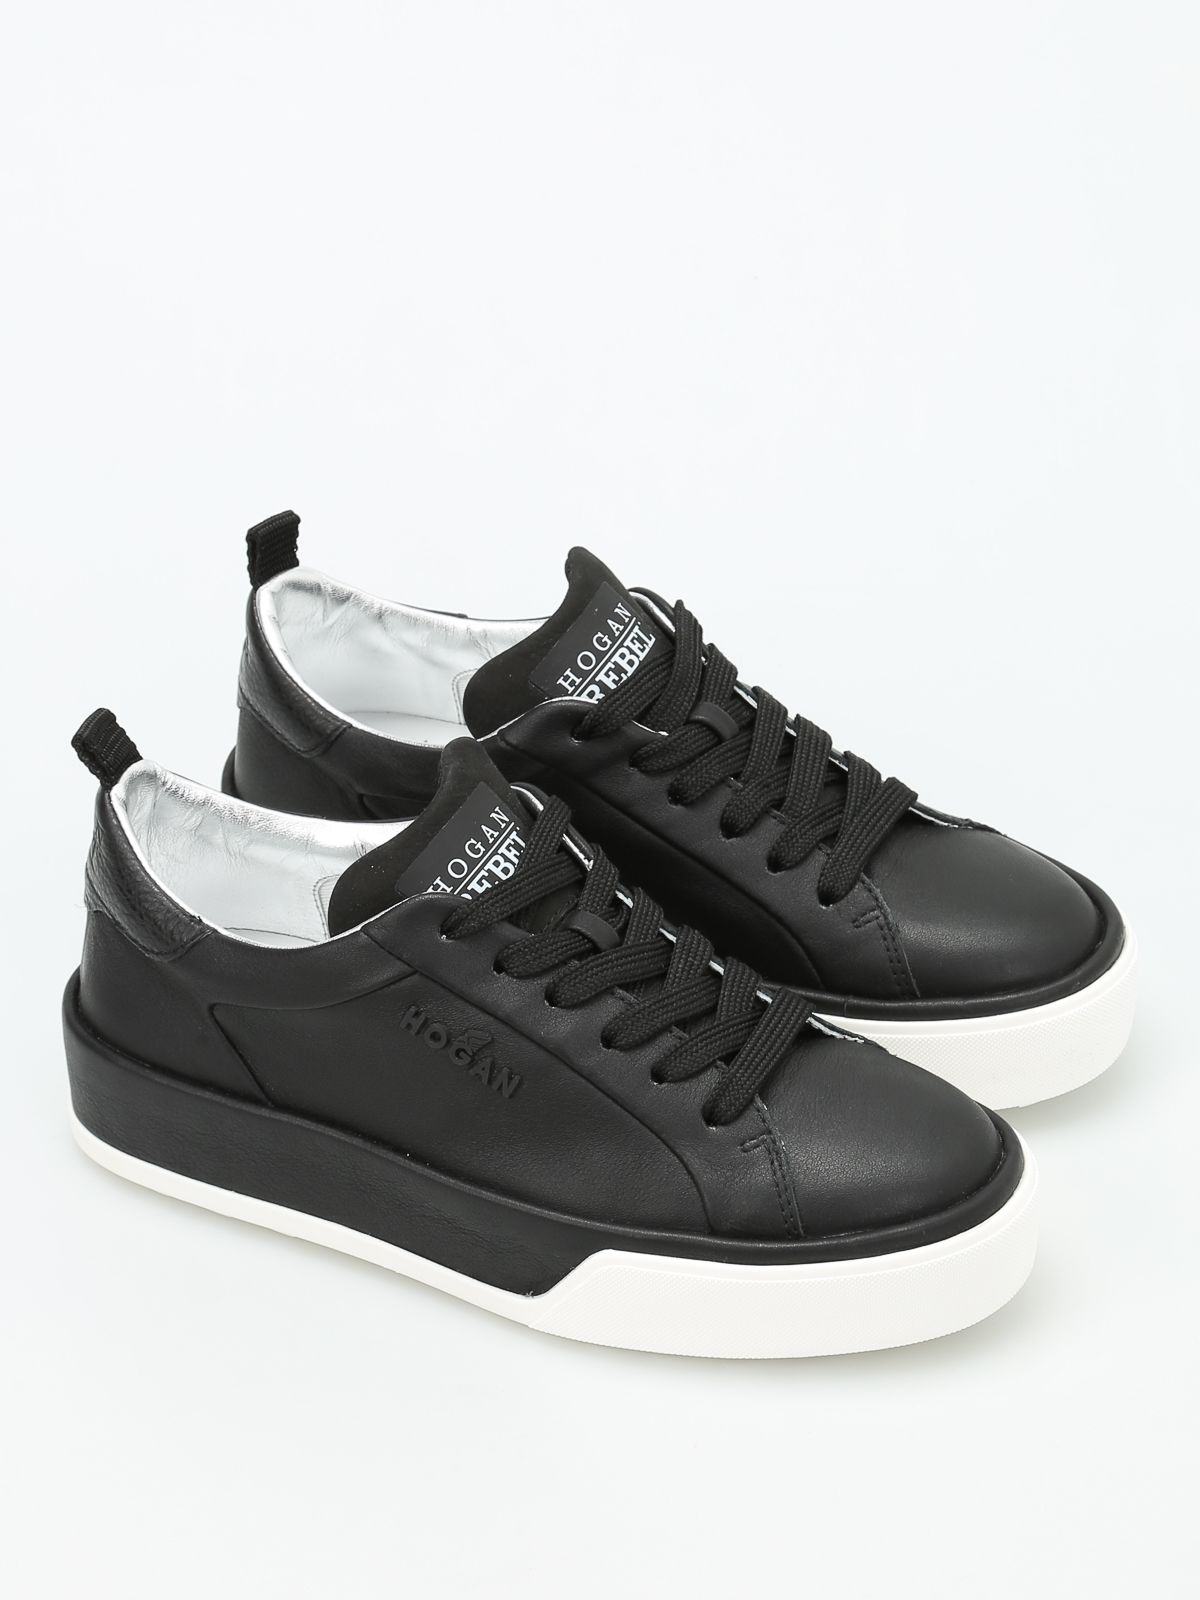 R320 Leather Sneakers